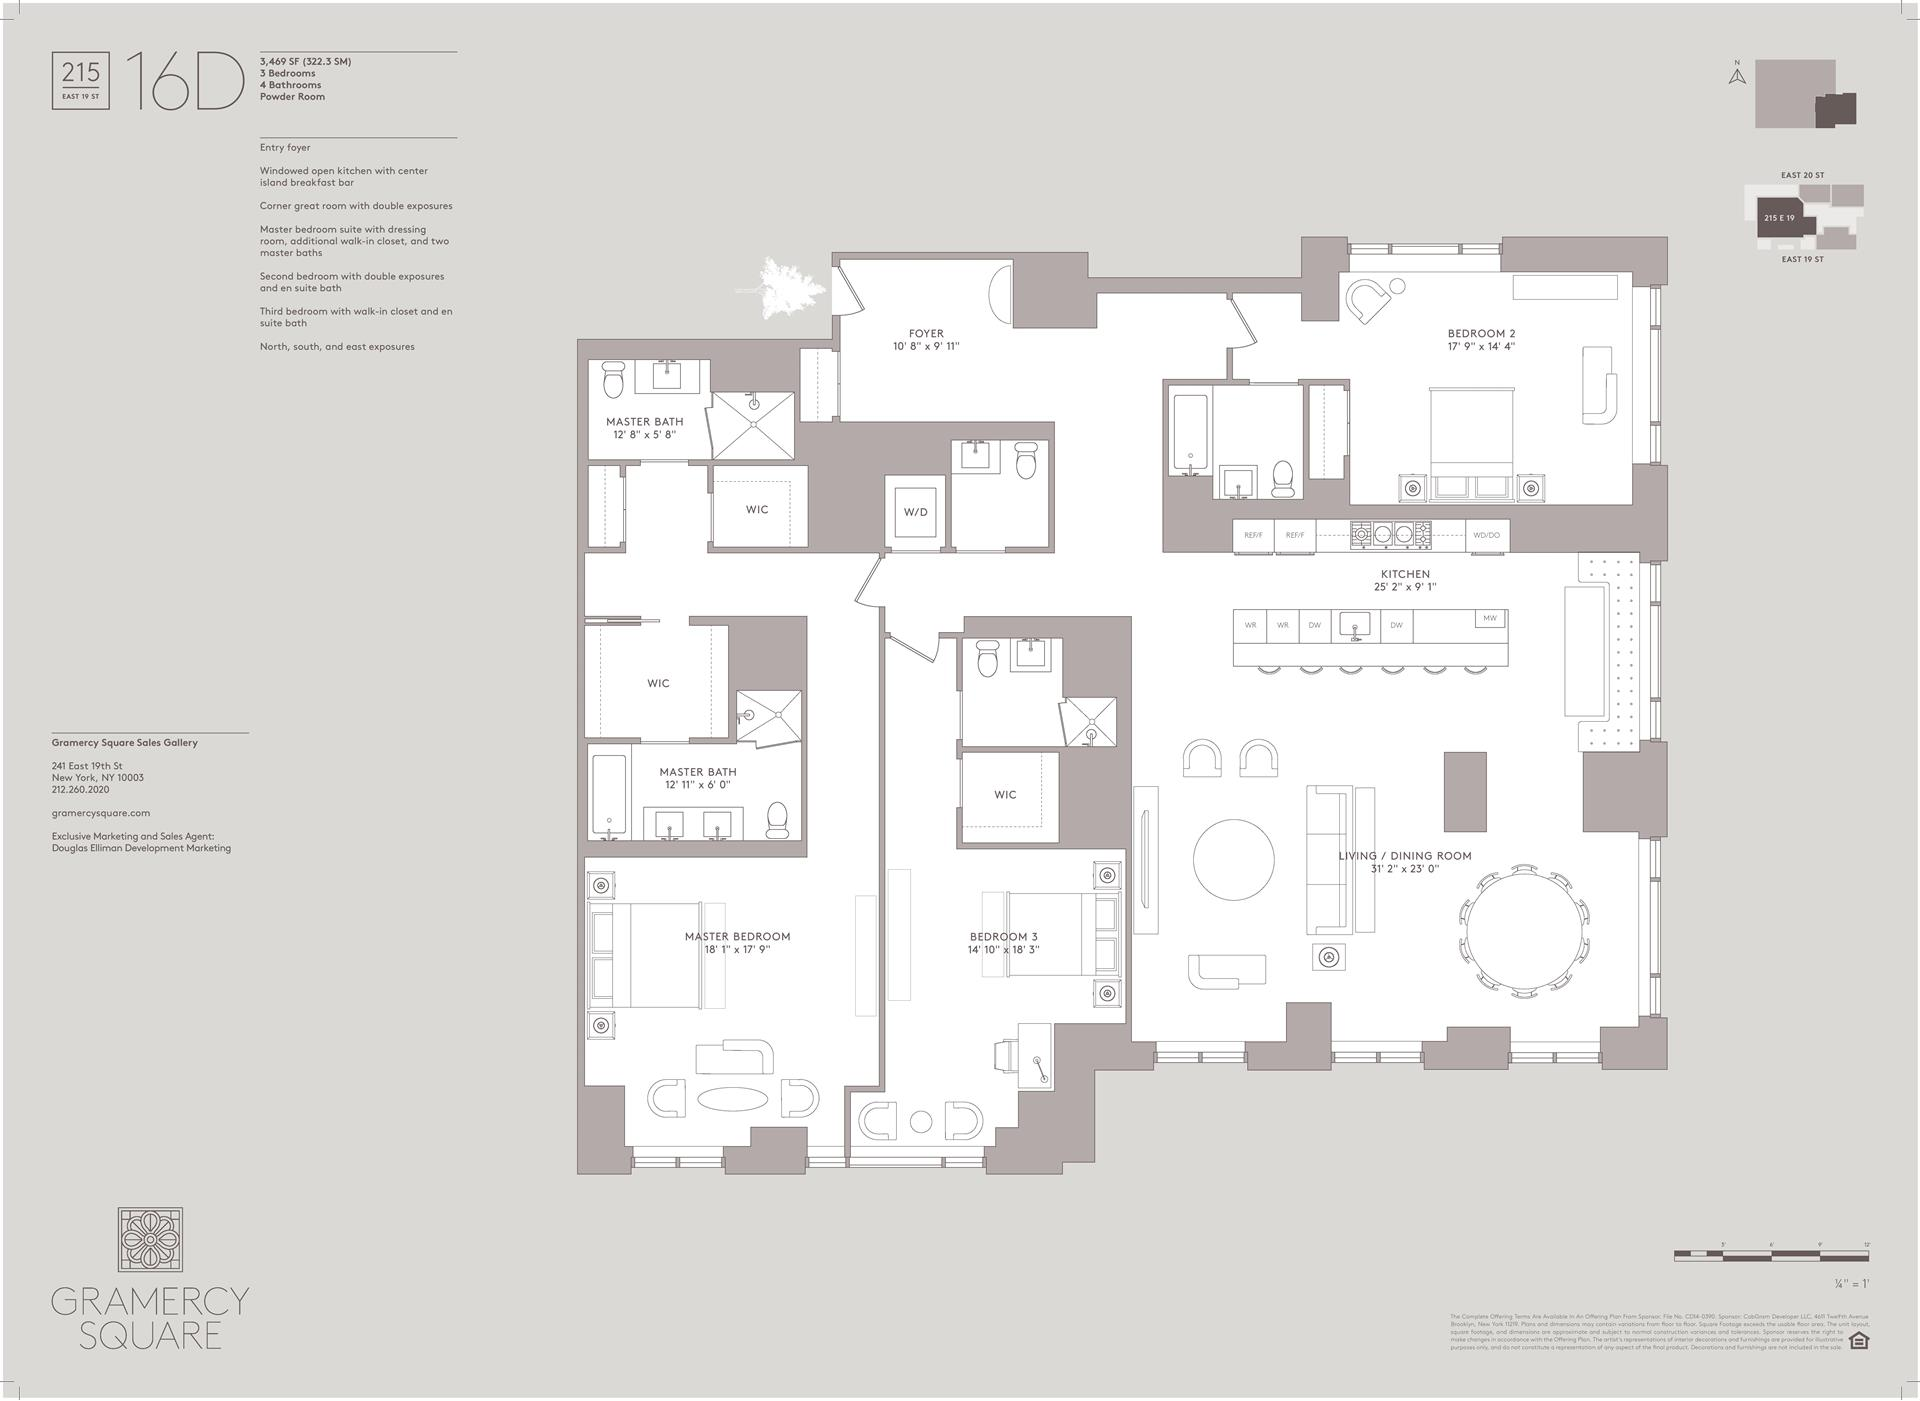 Floor plan of Gramercy Square, 215 East 19th St, 16D - Gramercy - Union Square, New York